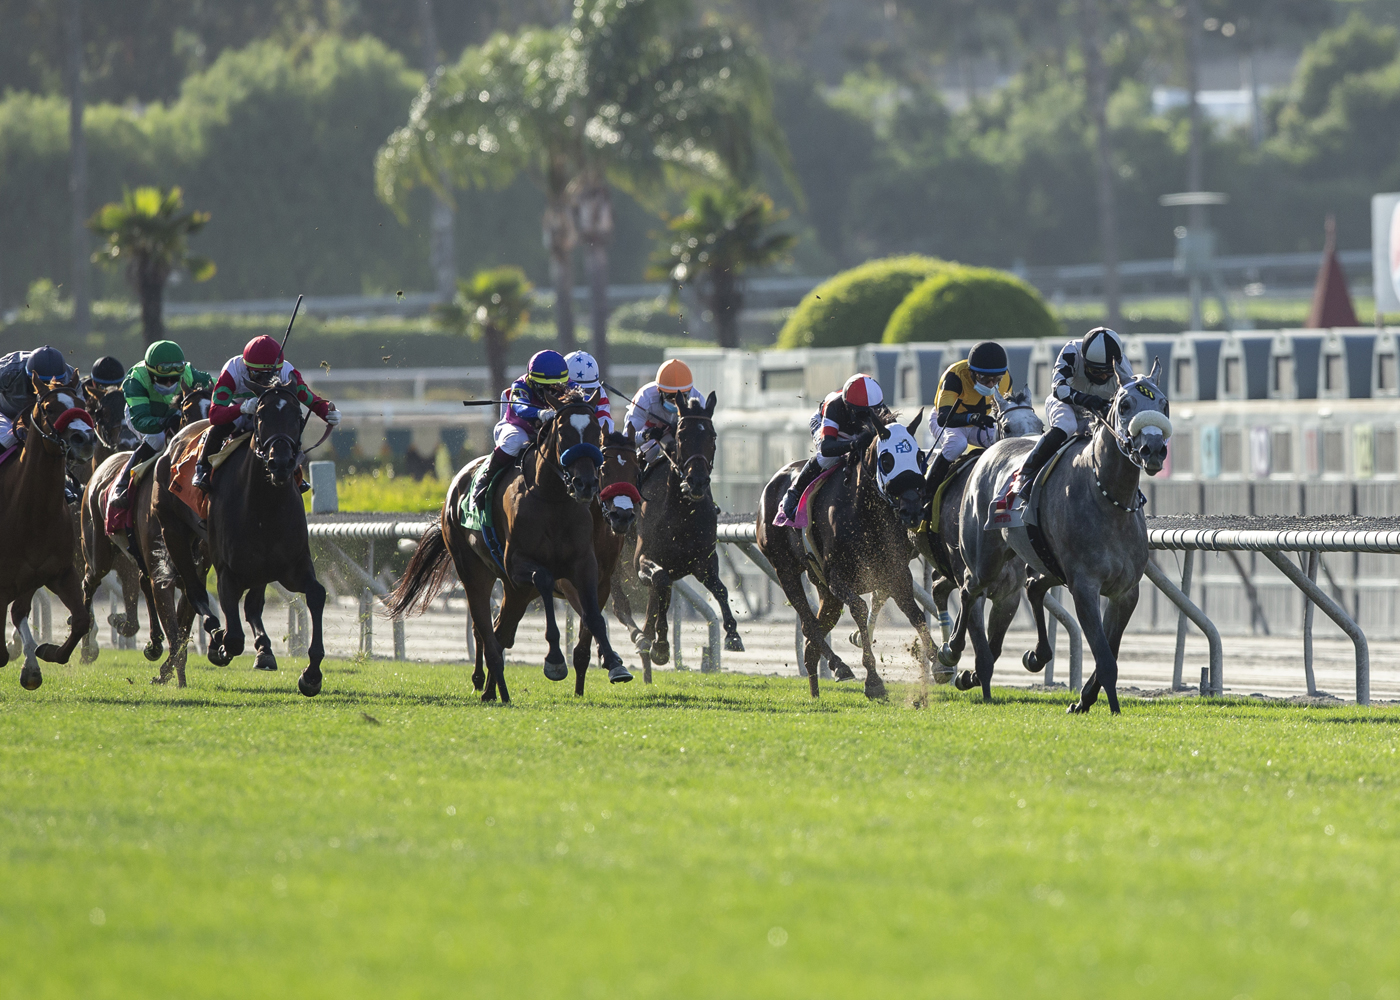 The Basics of Horse Racing: What you Need to Know